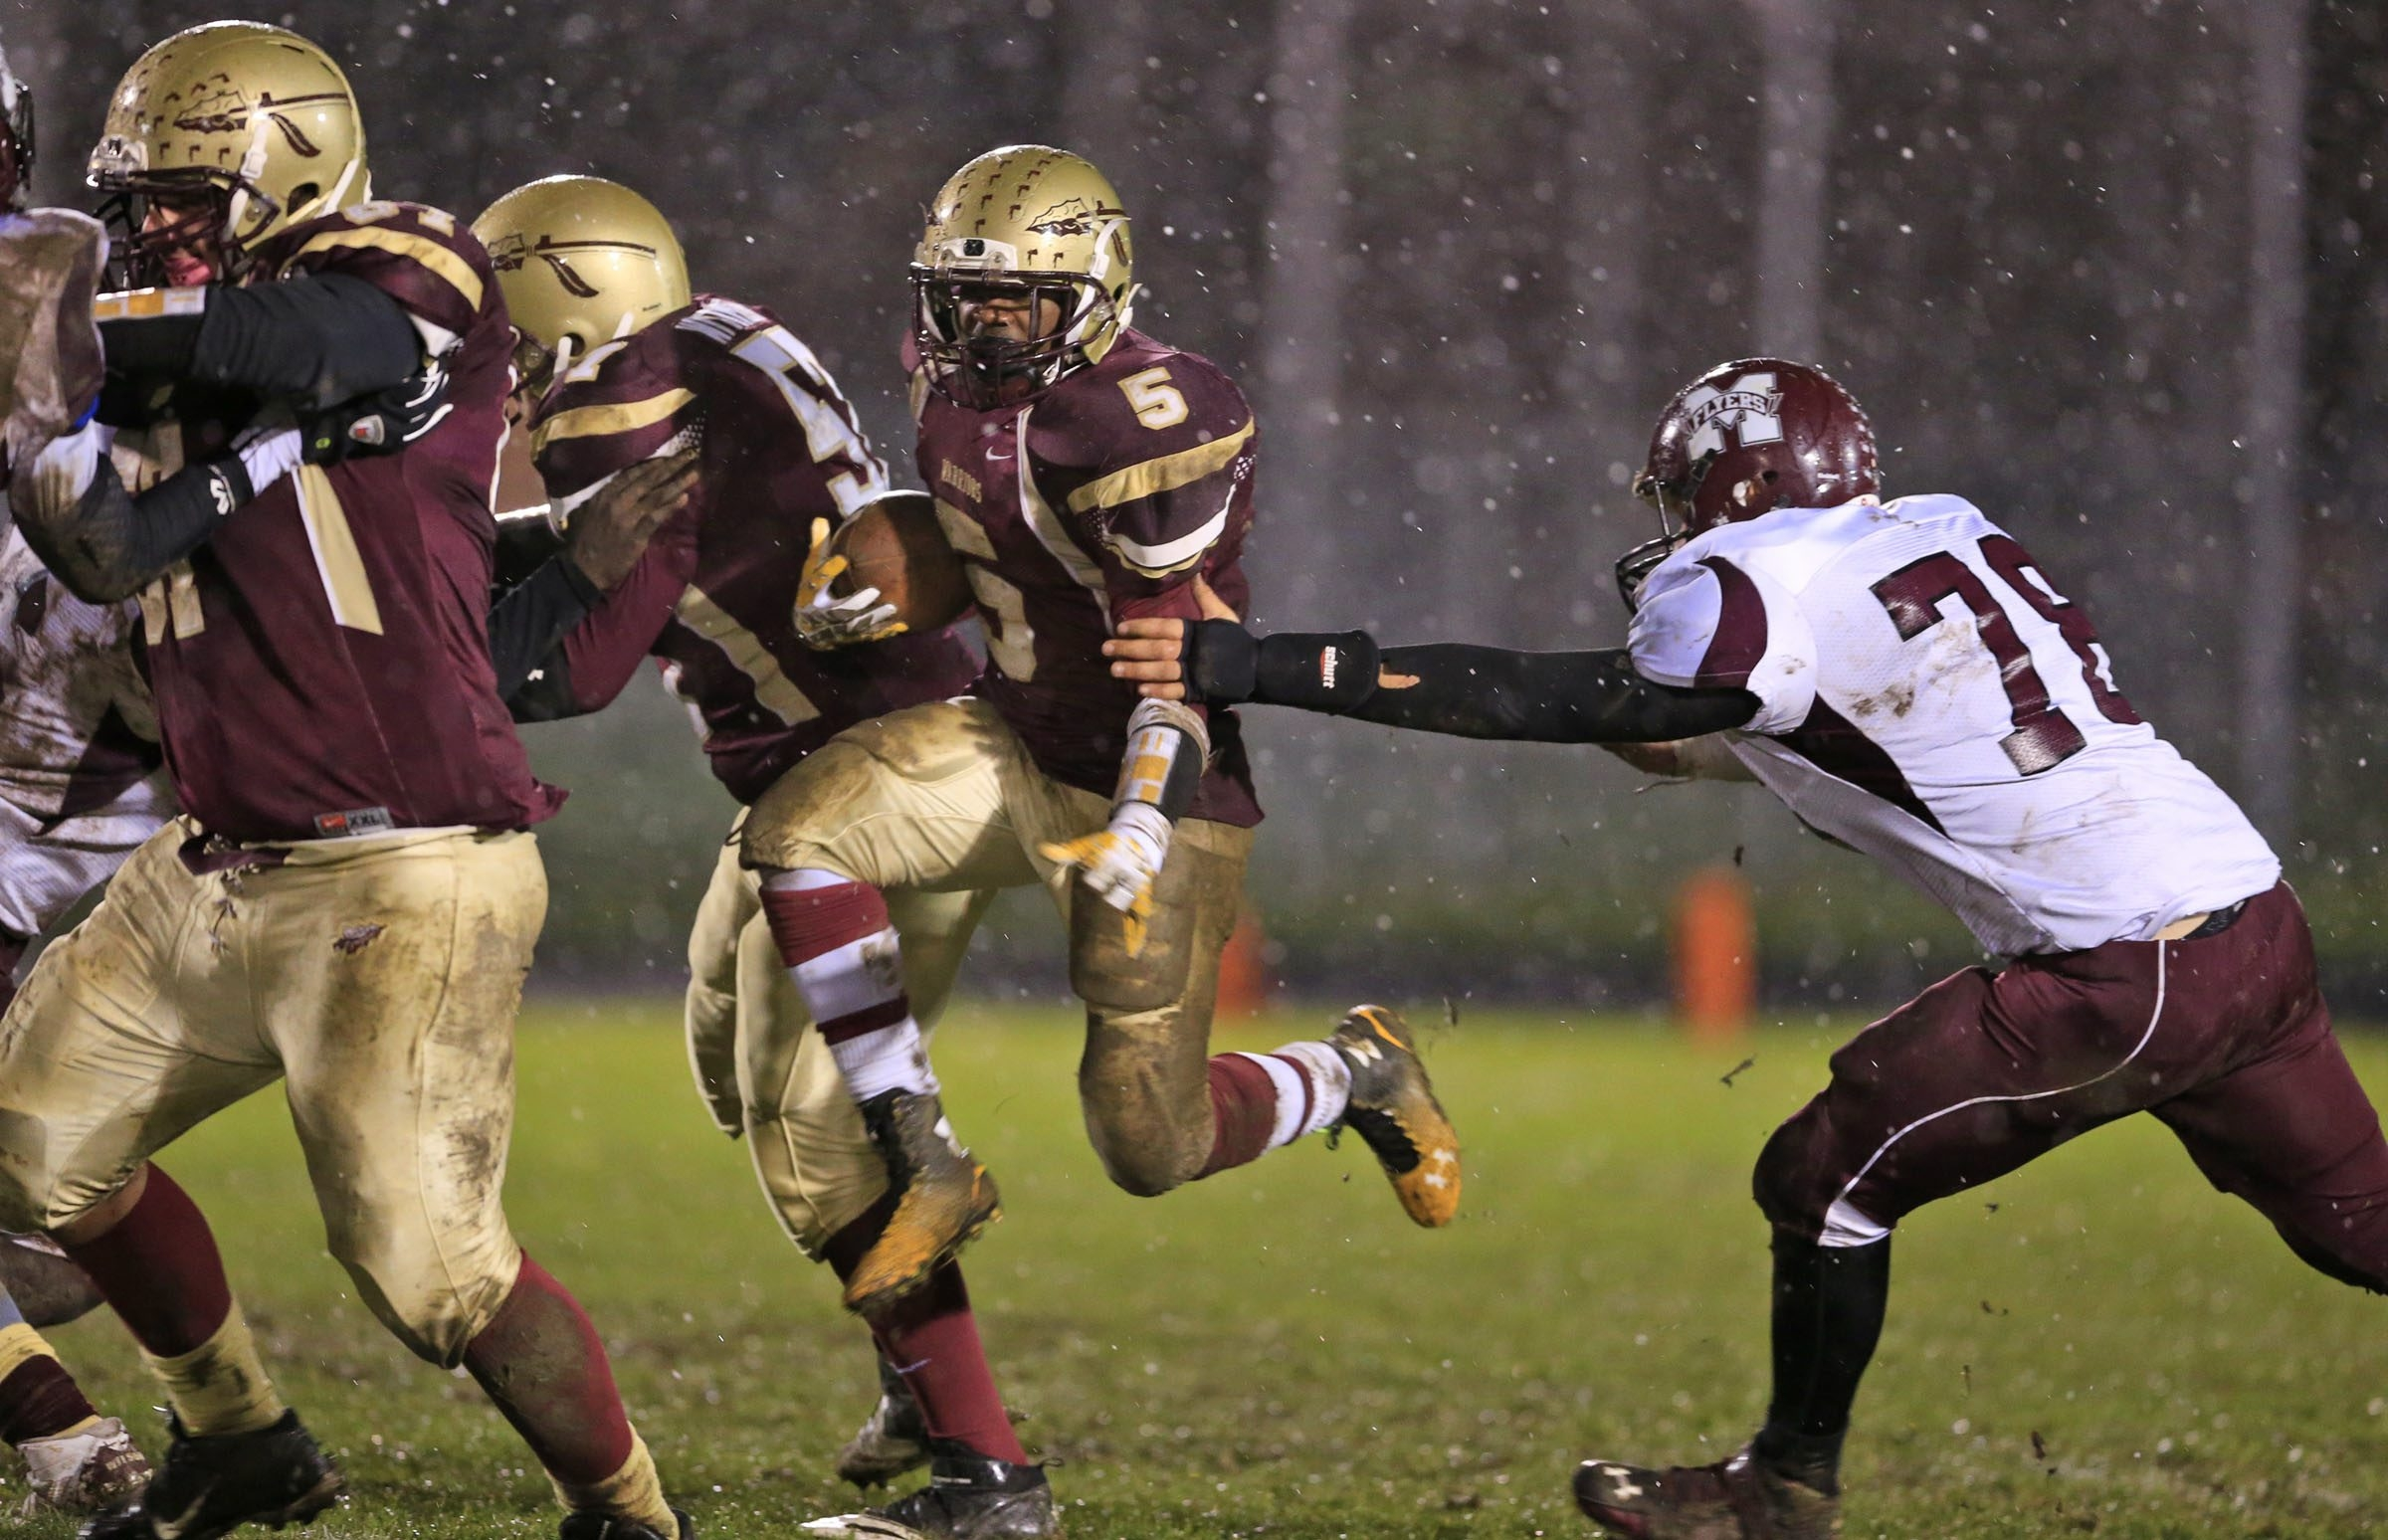 Cheektowaga's Marshawn Gibson leaps through a hole in Saturday night's game with Maryvale.